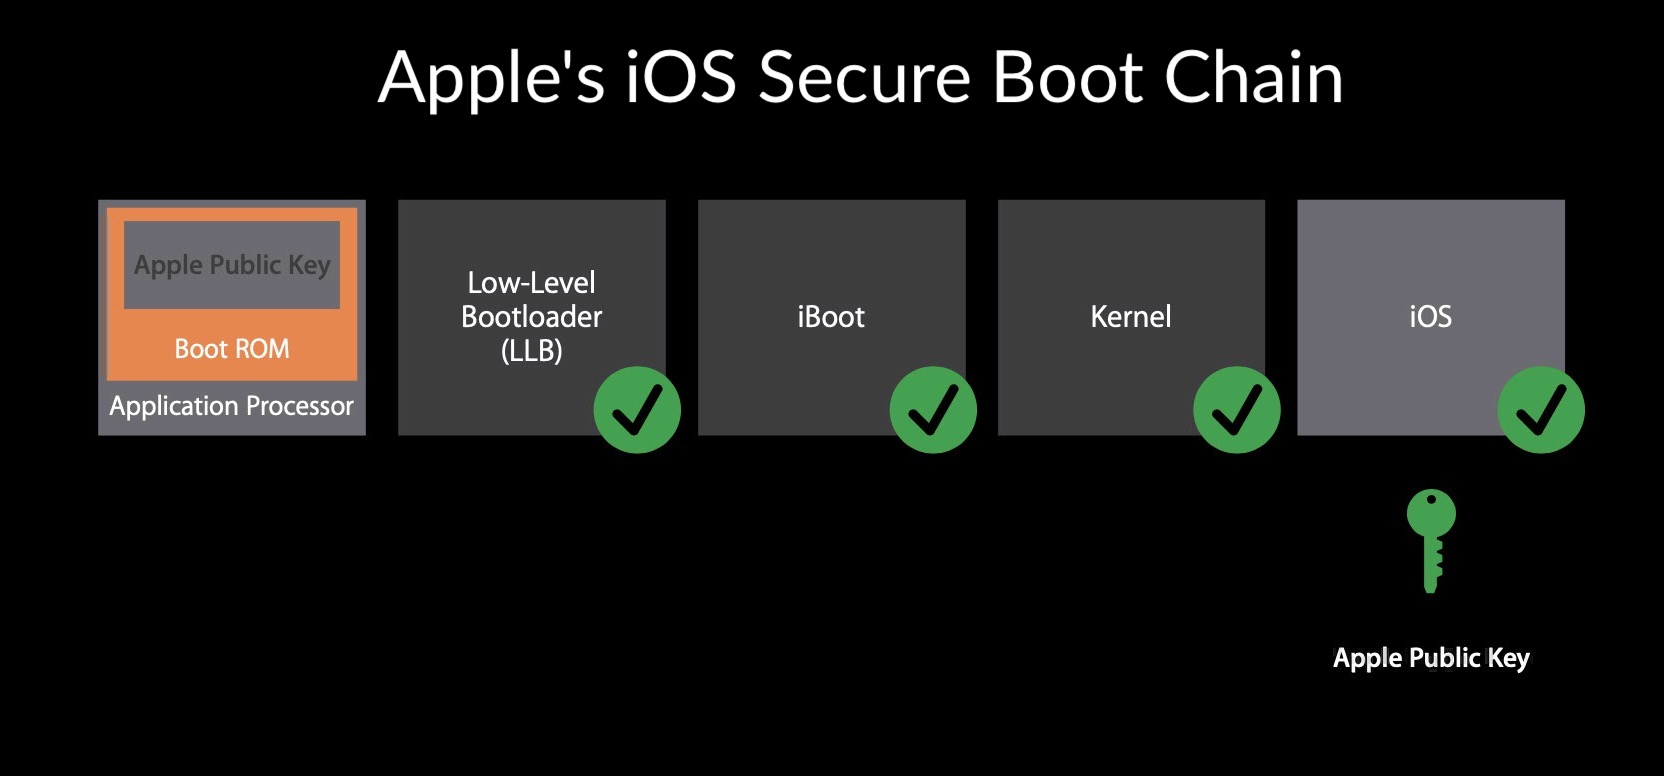 image of ios secure boot chain